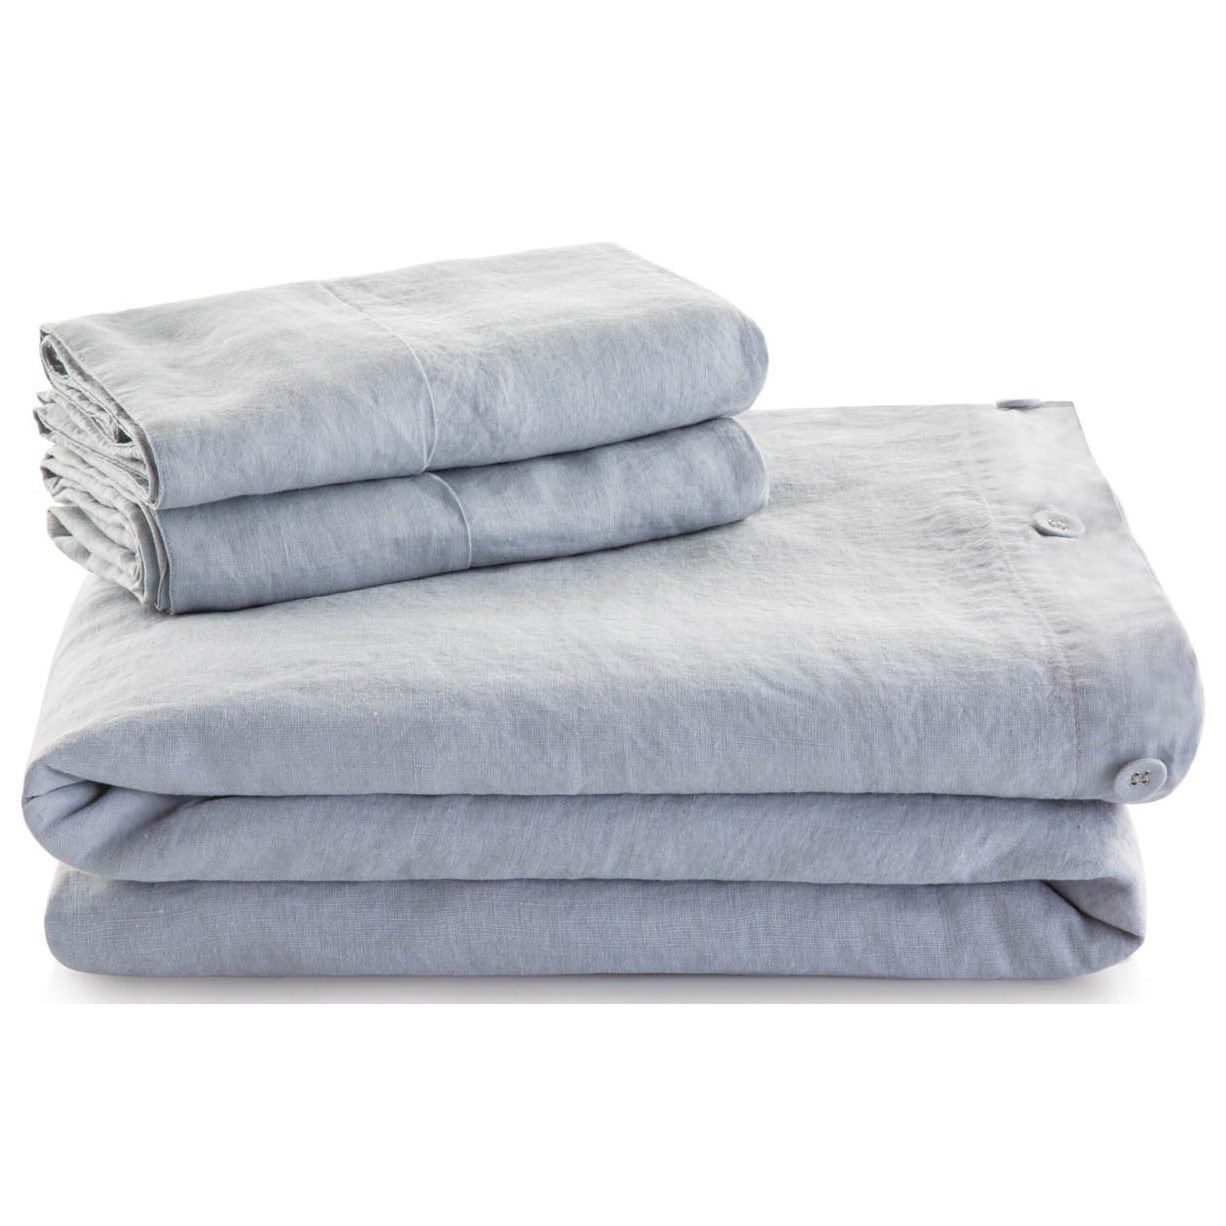 French Linen King 100% French Linen Duvet Set by Malouf at Northeast Factory Direct